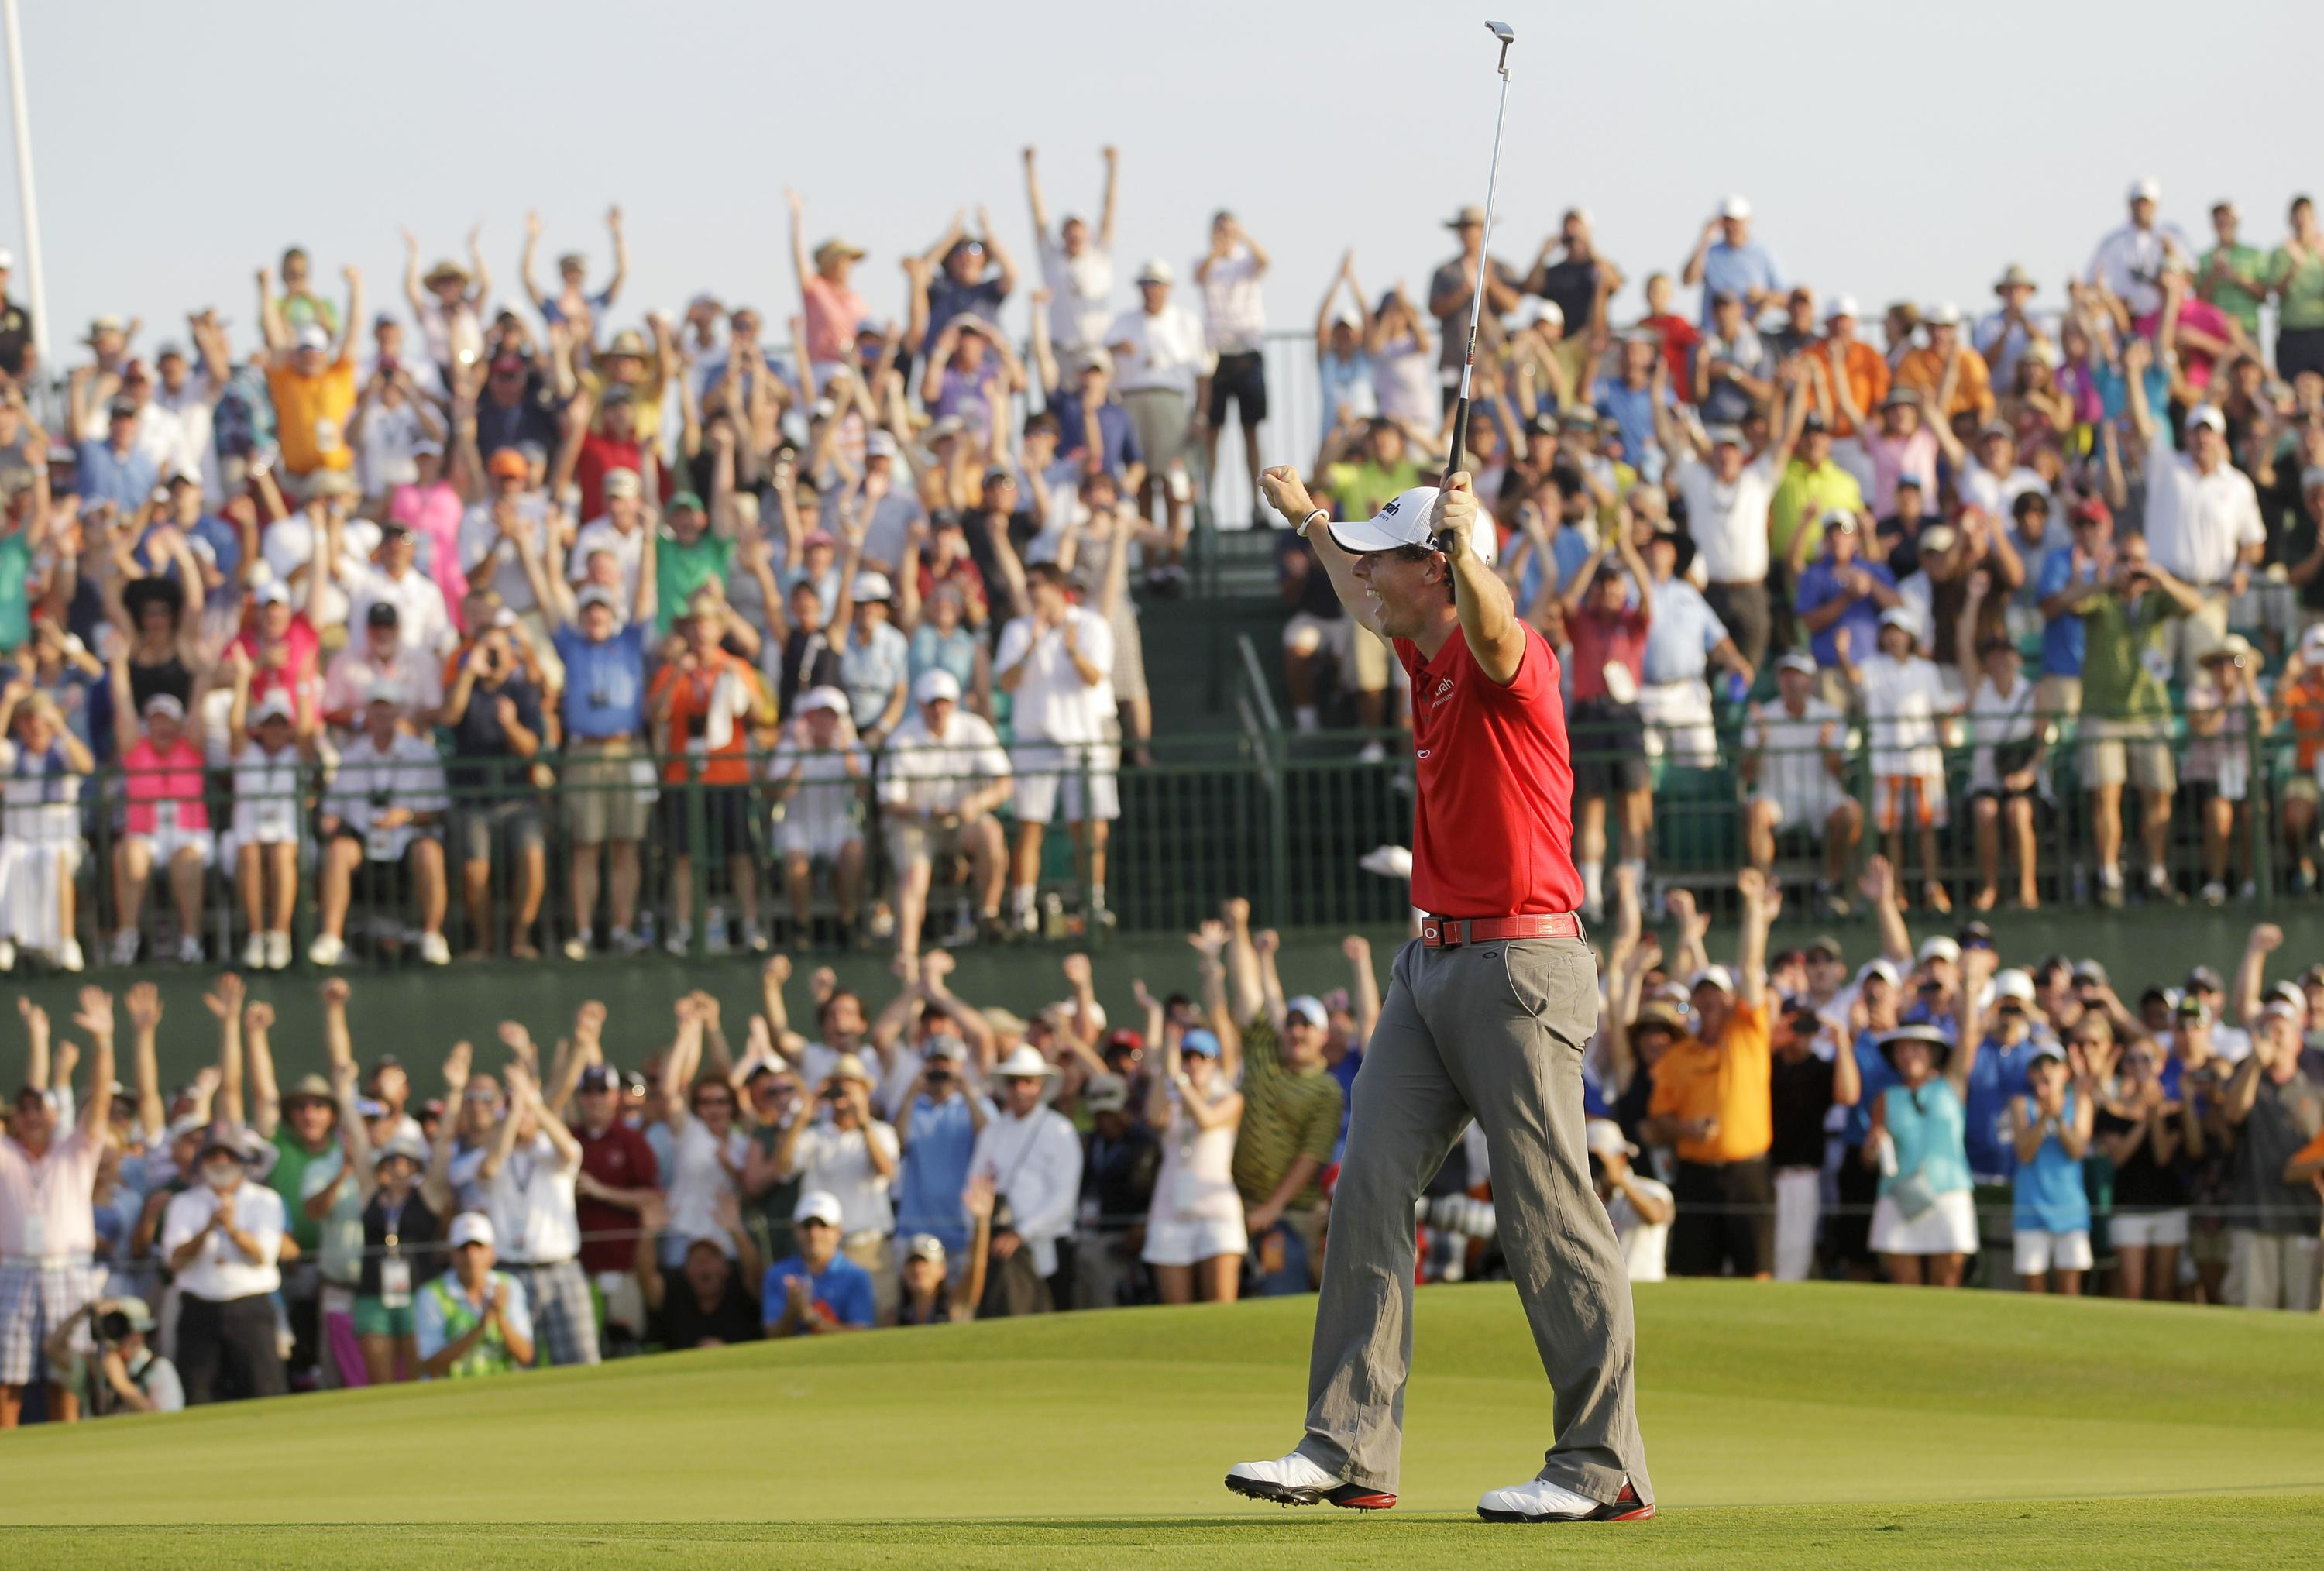 Getting There: PGA Championship promises improved access